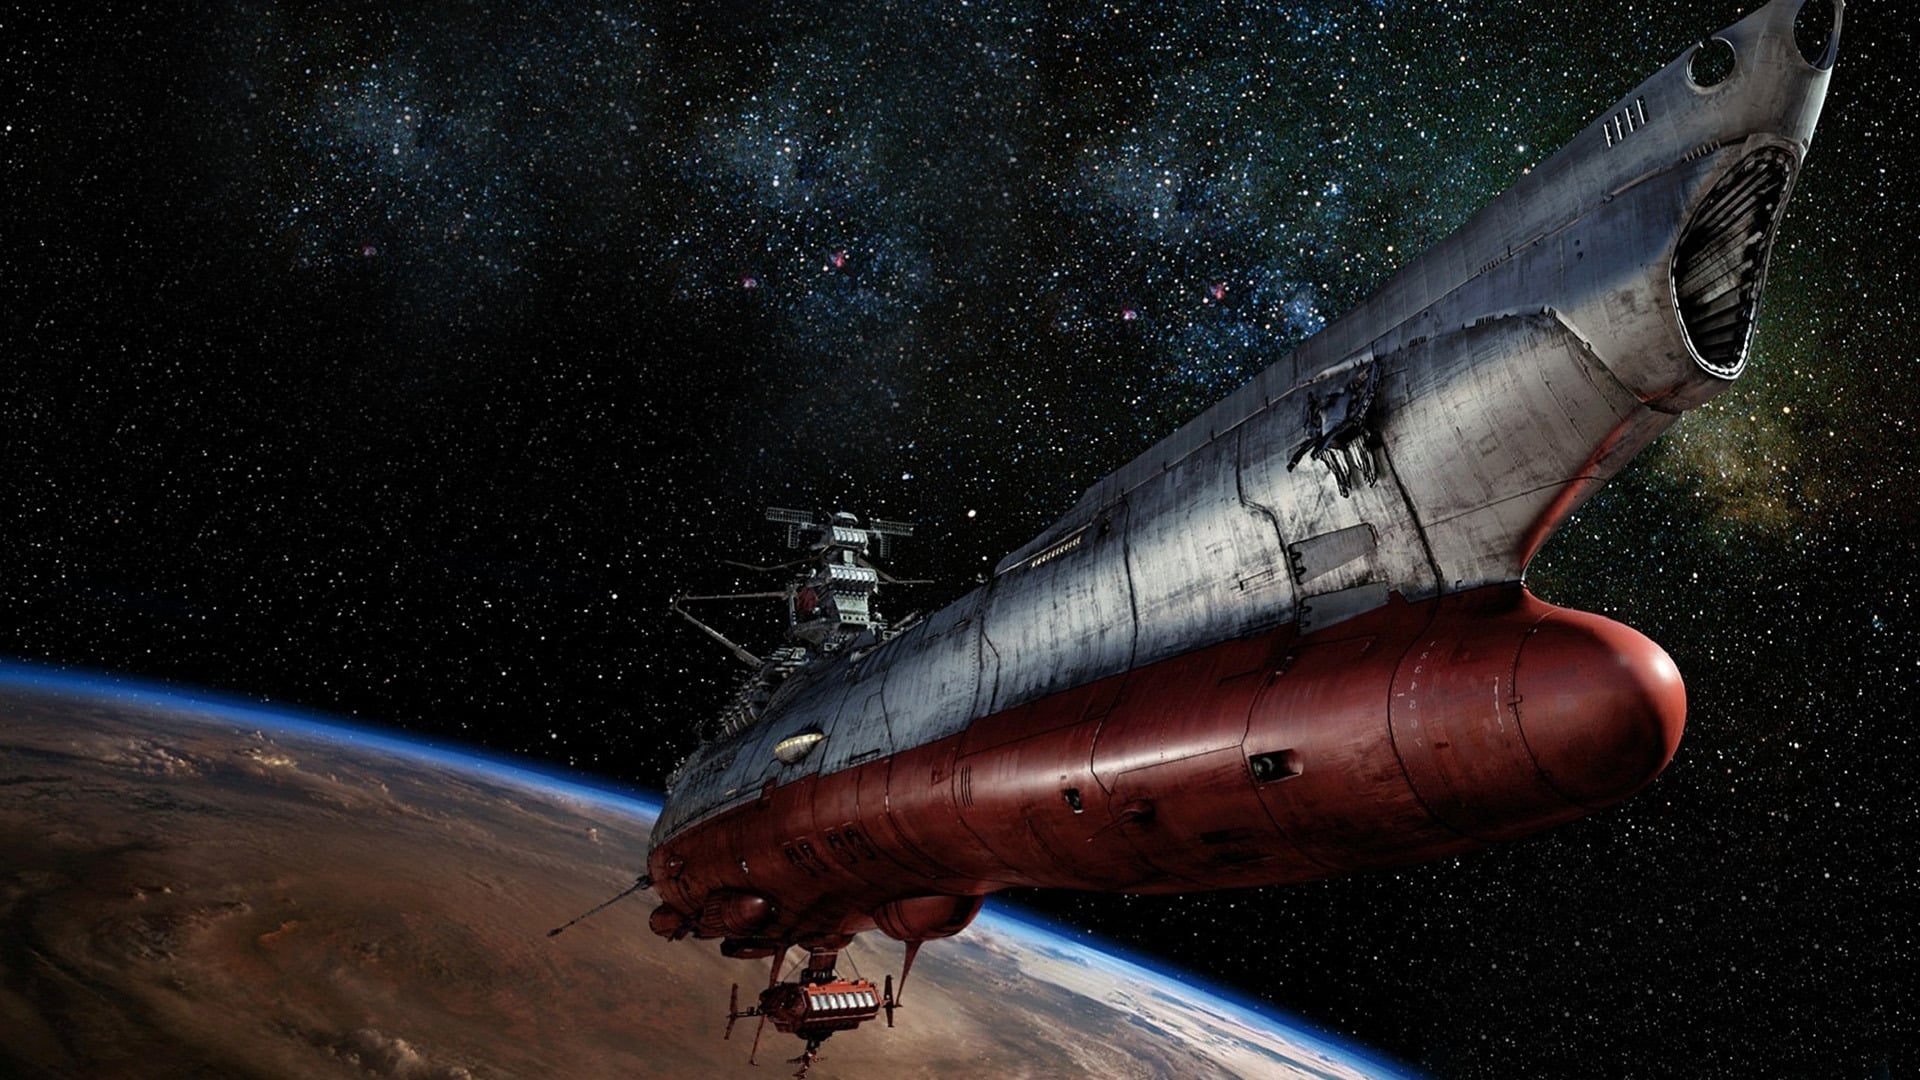 The Yamato is launched in Space Battleship Yamato (2010)